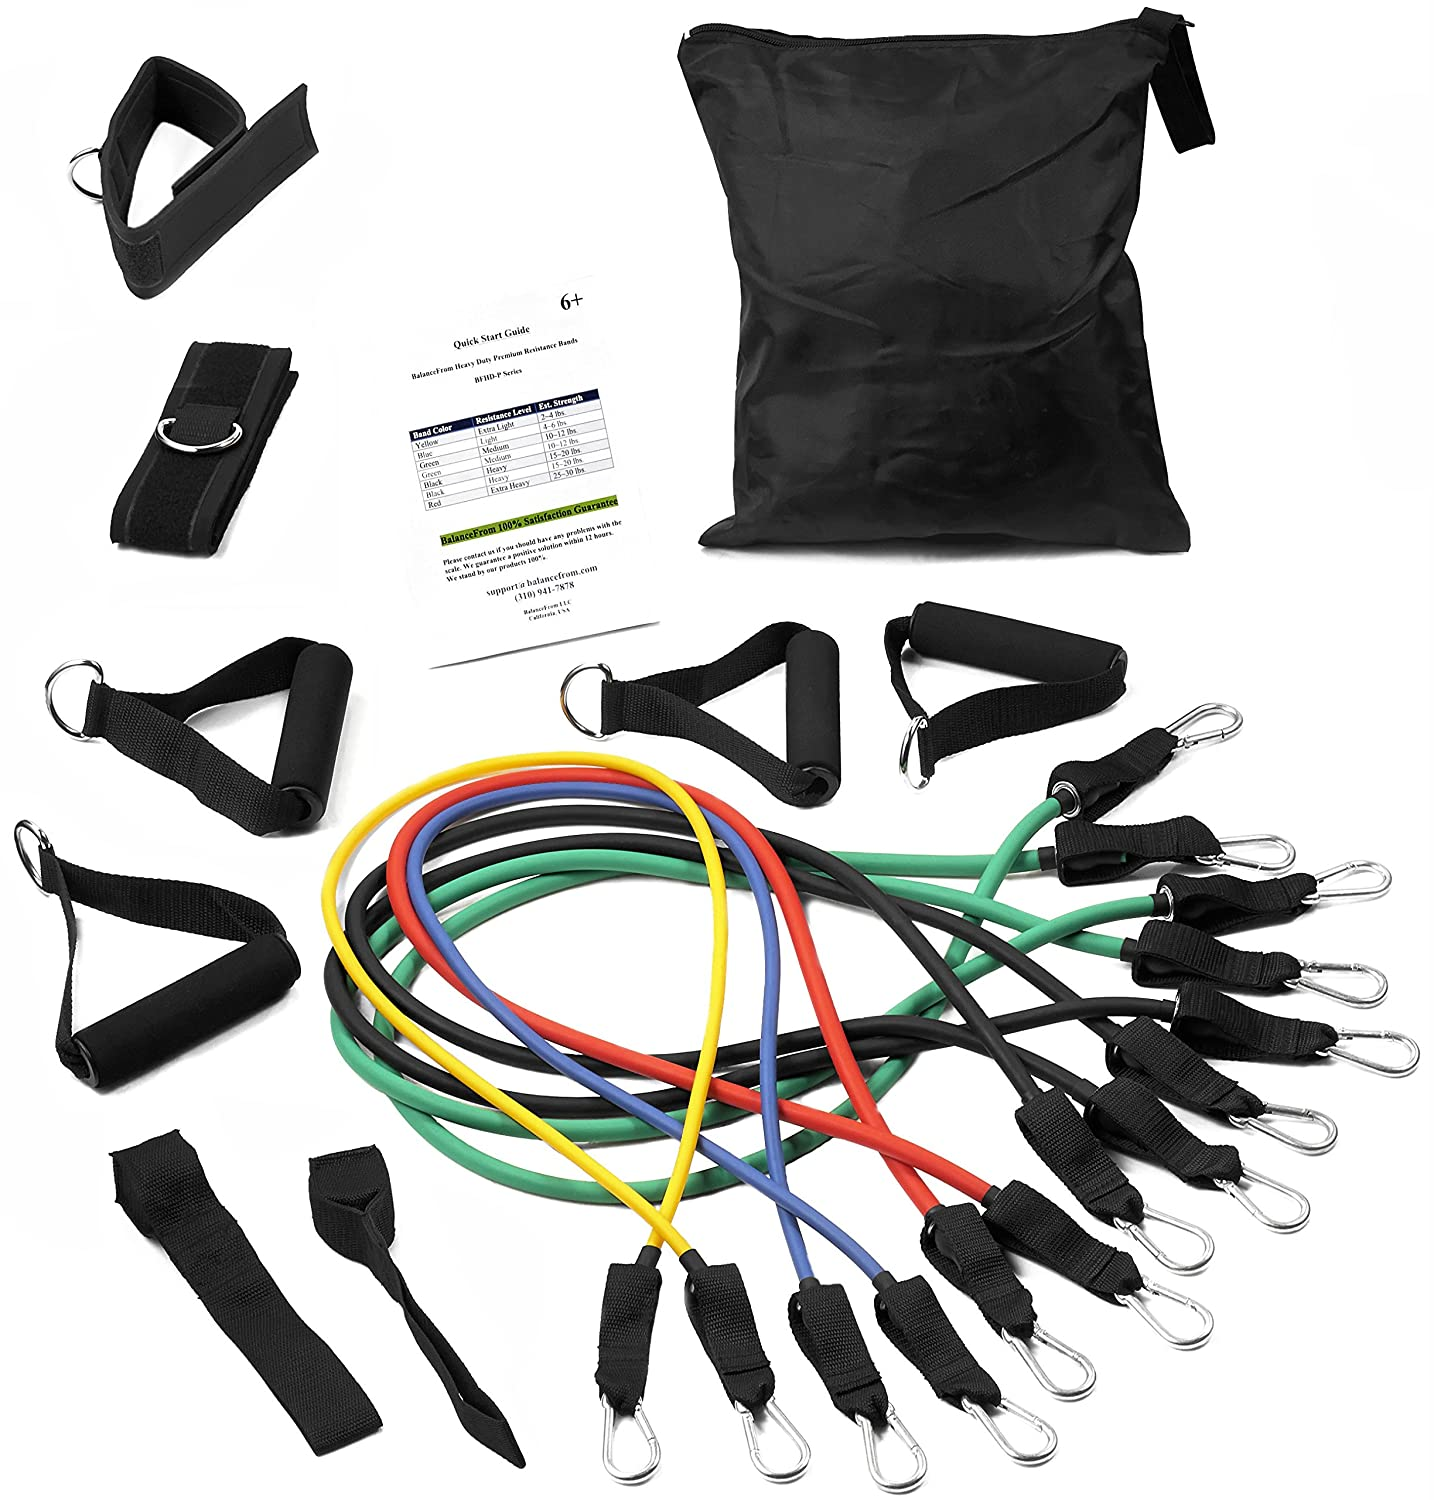 BalanceFrom Heavy Duty Premium Resistance Band Kit with Improved Safe Door Anchor, Ankle Strap and Carrying Case at Amazon.com